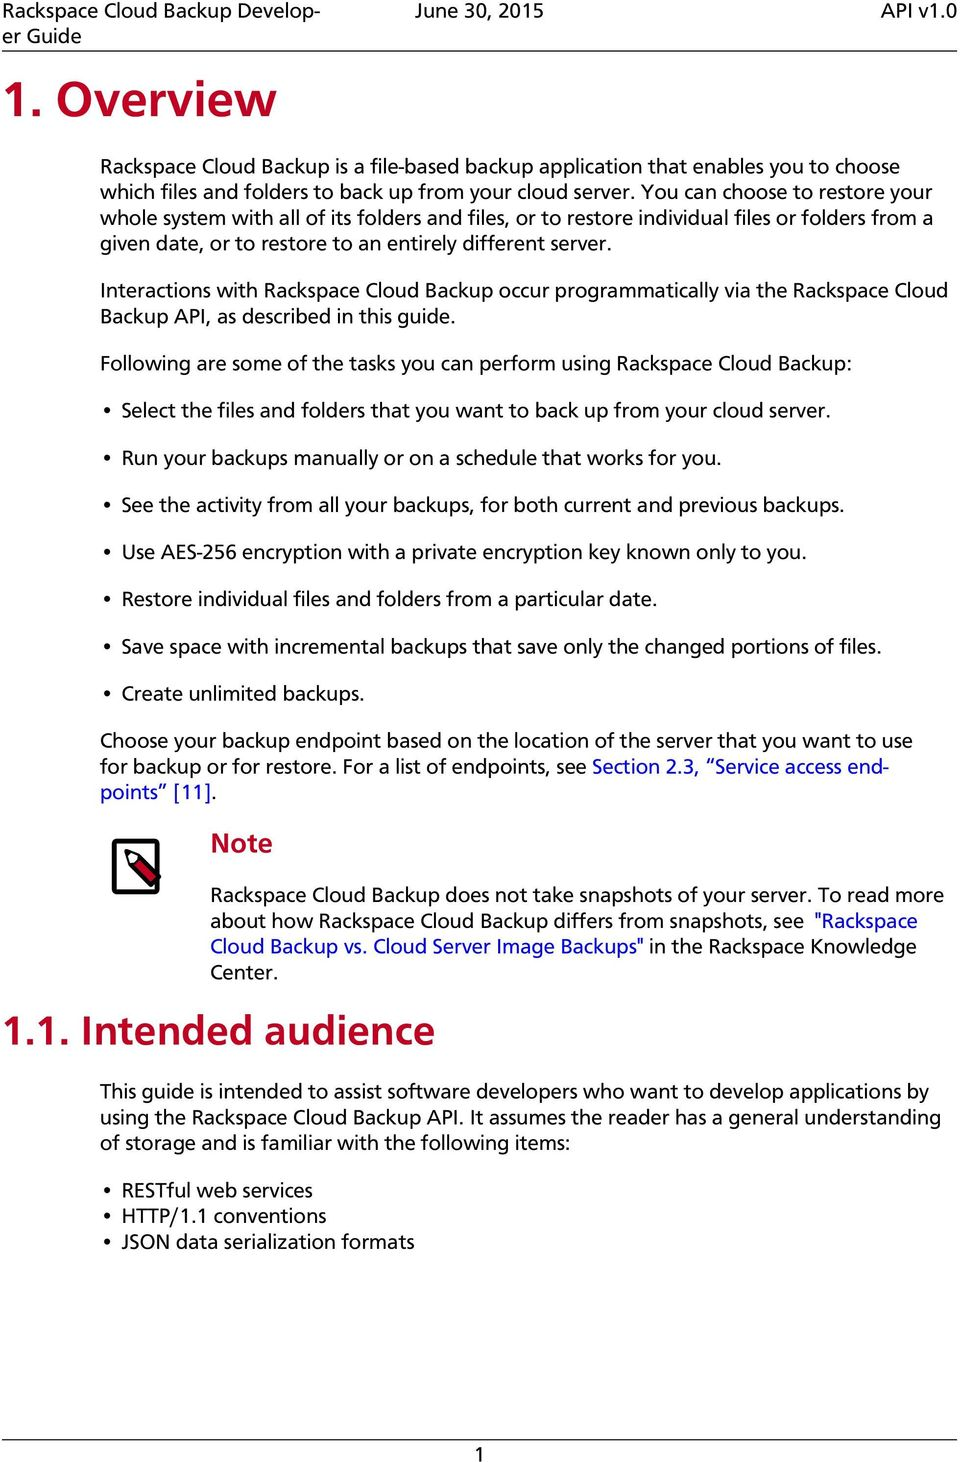 Interactions with Rackspace Cloud Backup occur programmatically via the Rackspace Cloud Backup API, as described in this guide.